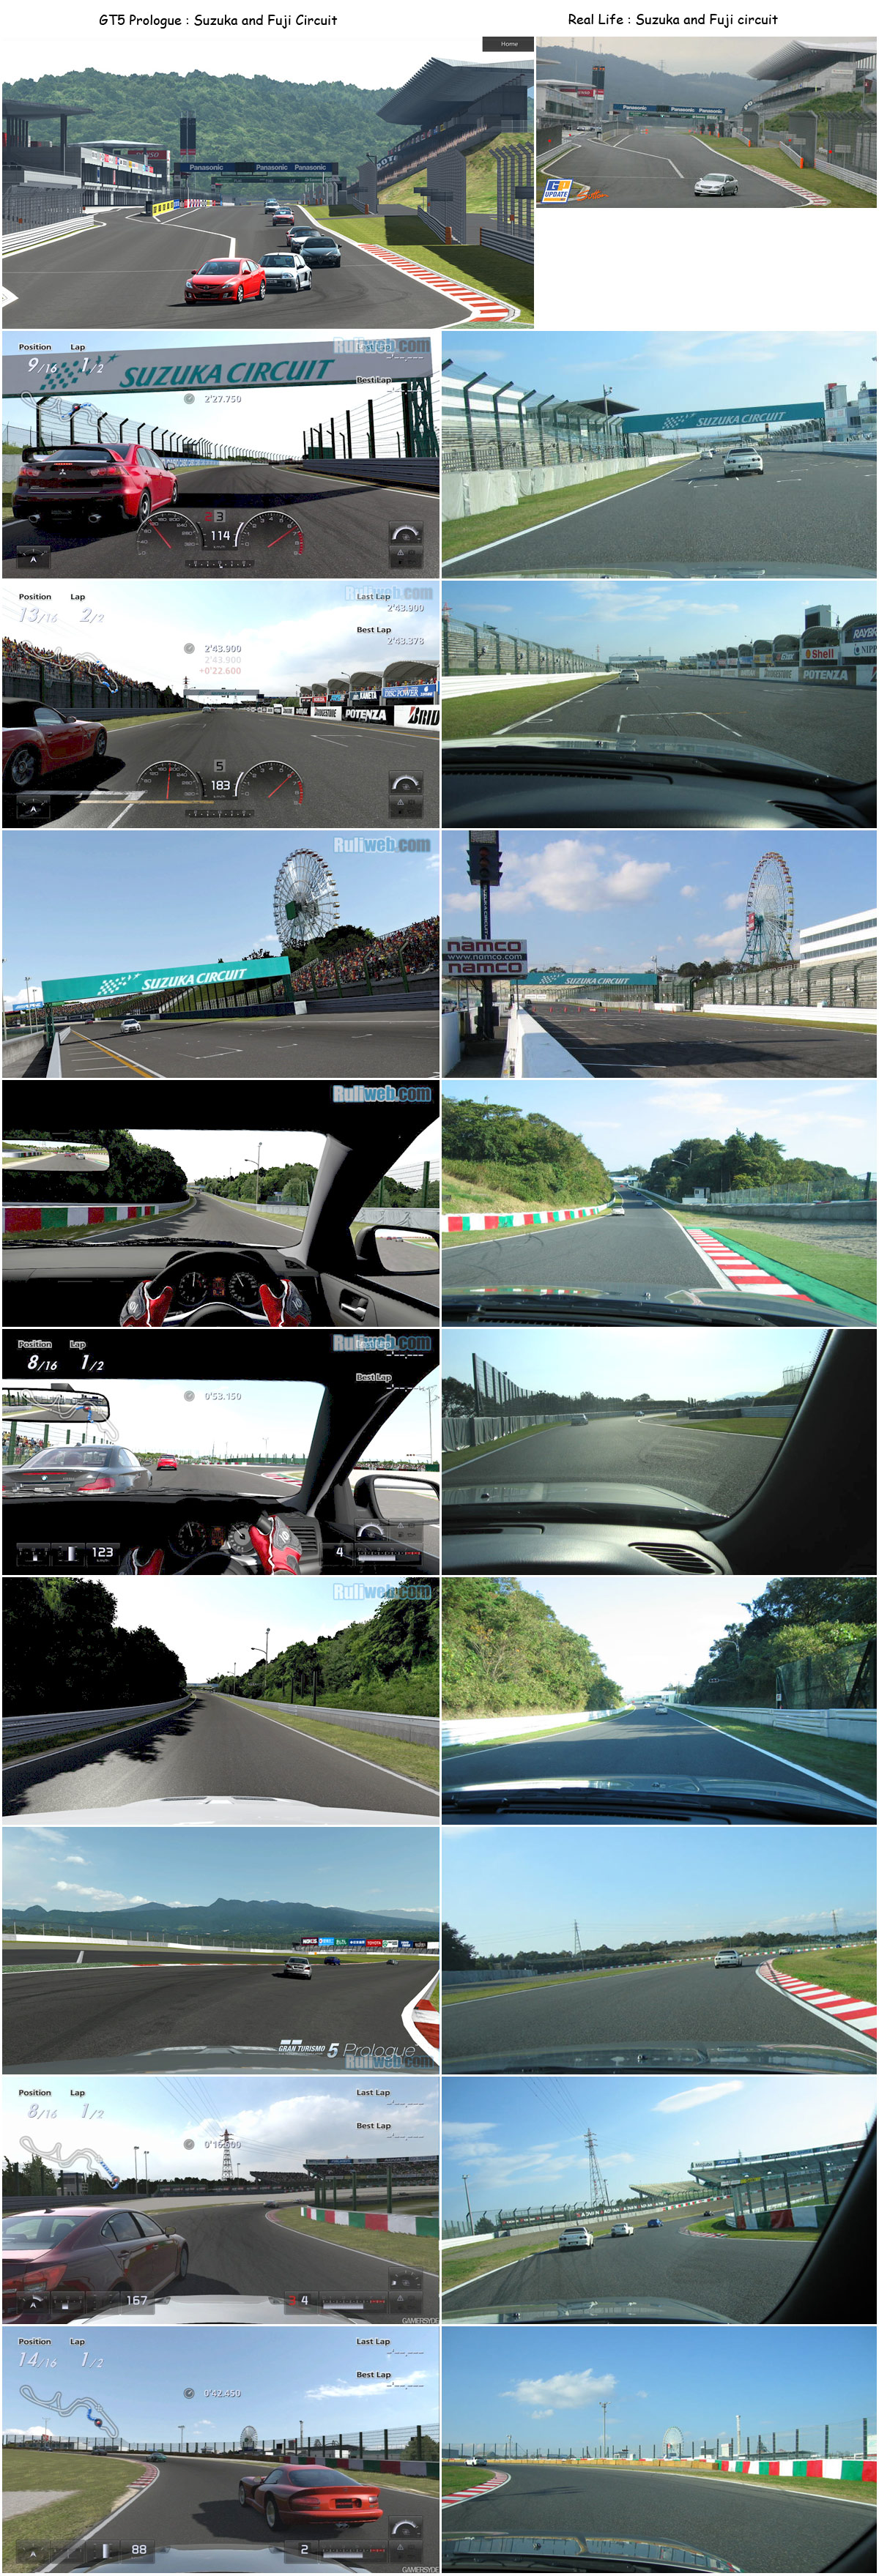 http://generationdreamteam.free.fr/imagesjeux/Comparaisons/GT5Prologue-Suzuka.jpg